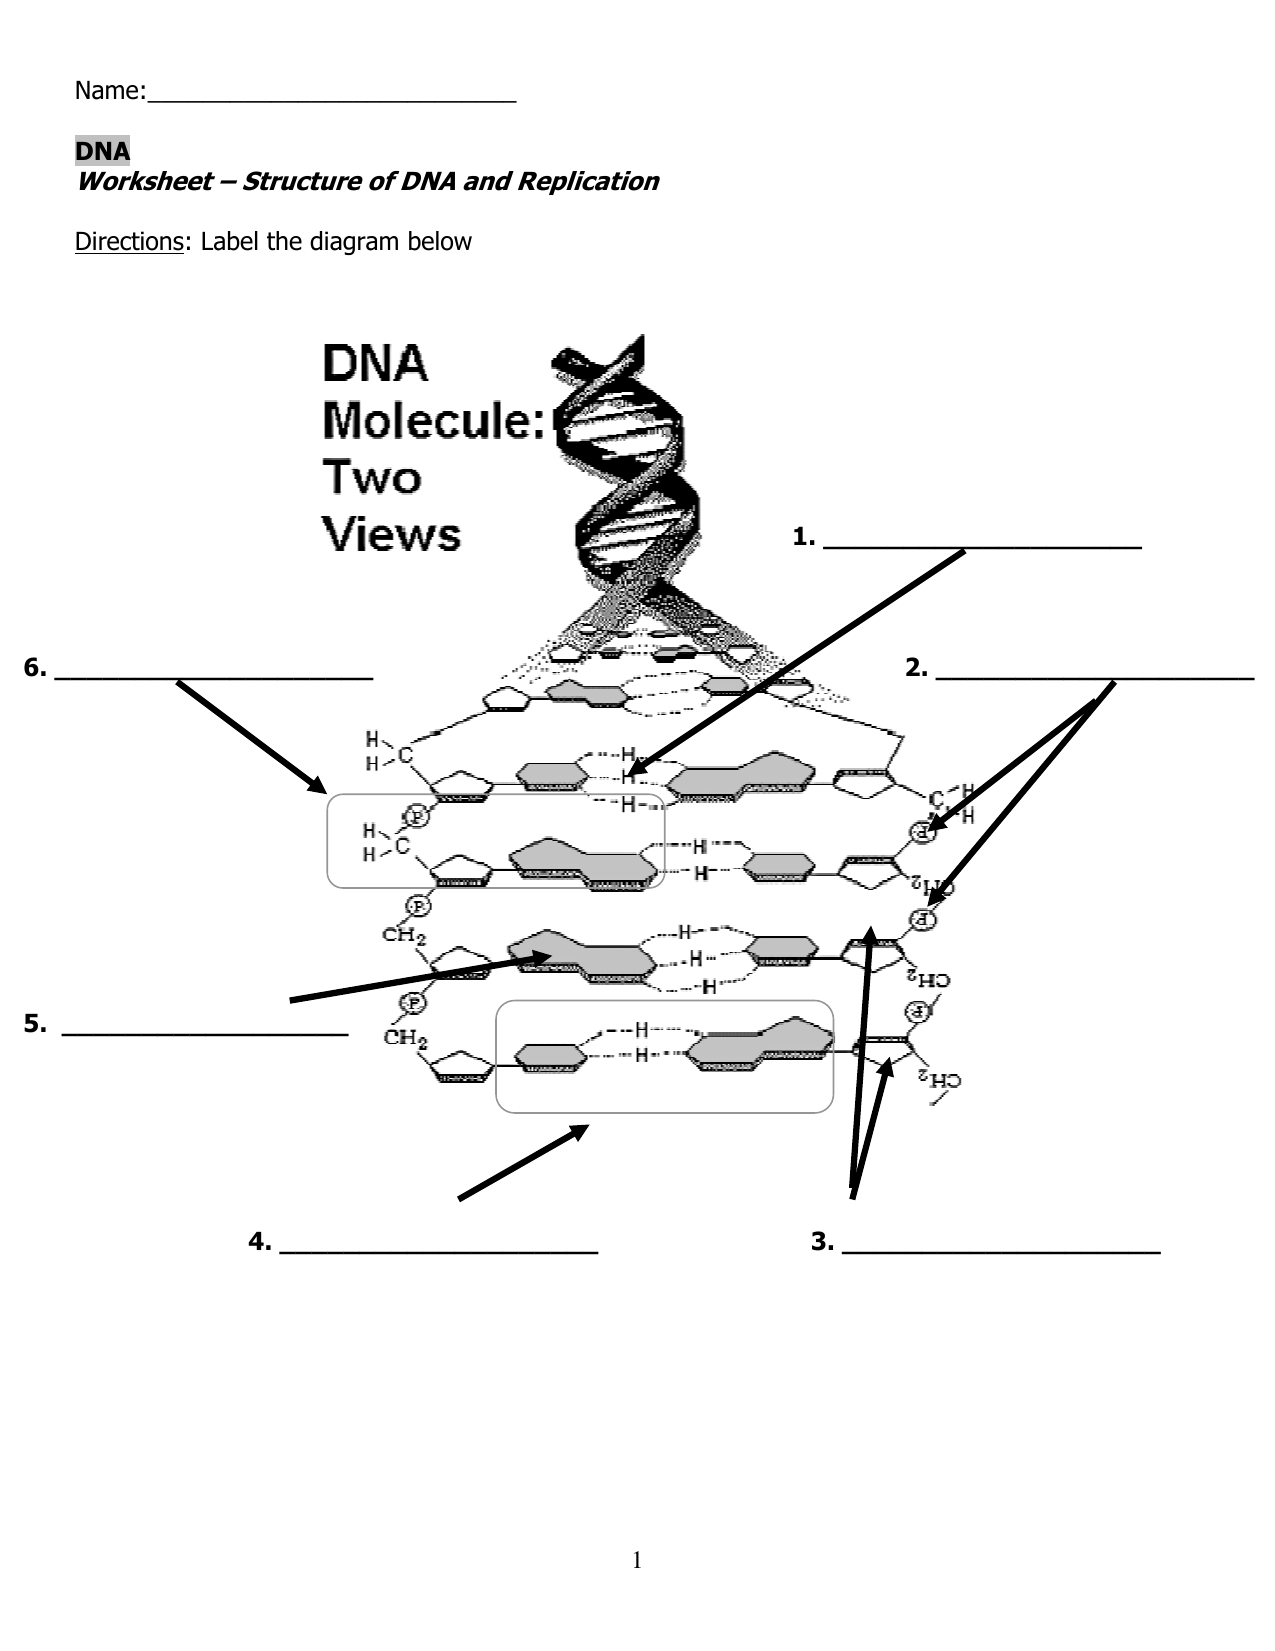 Worksheet – Structure Of Dna And Replication Along With Structure Of Dna And Replication Worksheet Answers